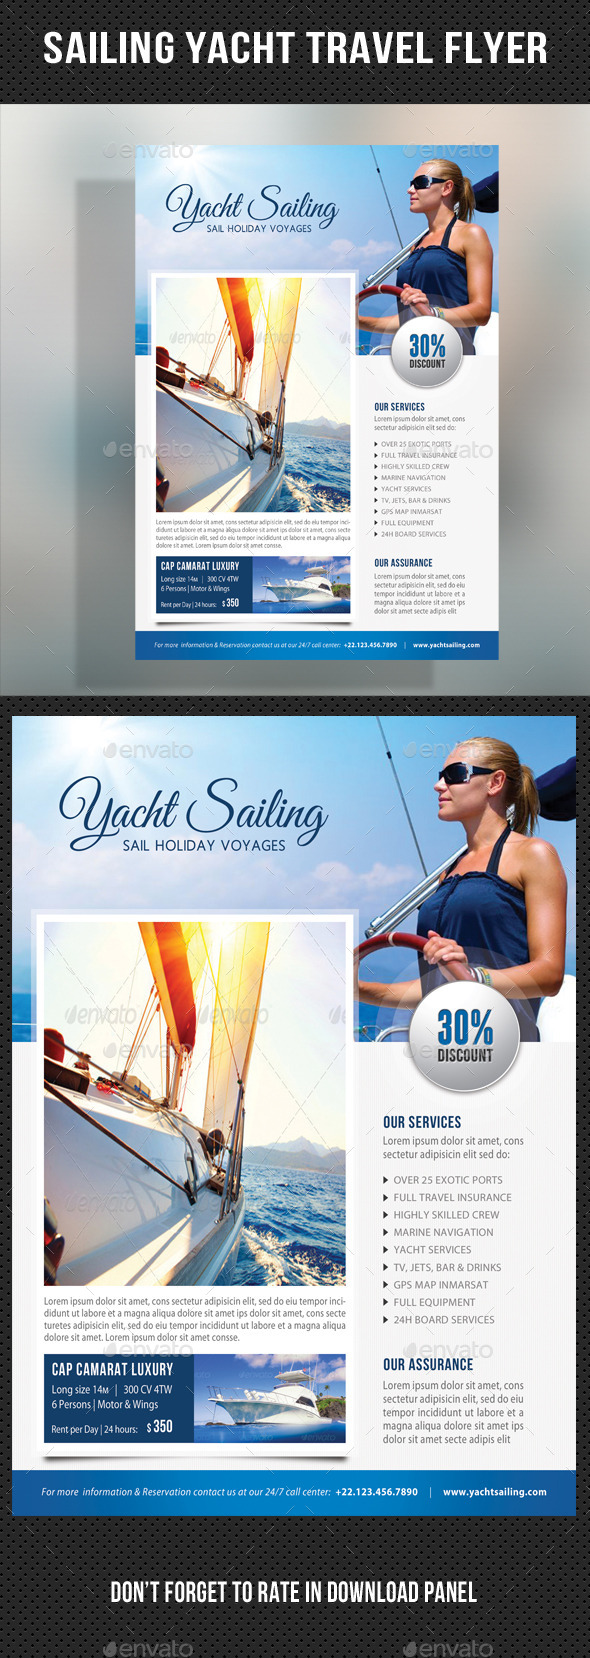 GraphicRiver Sailing Yacht Travel Flyer 05 11170396